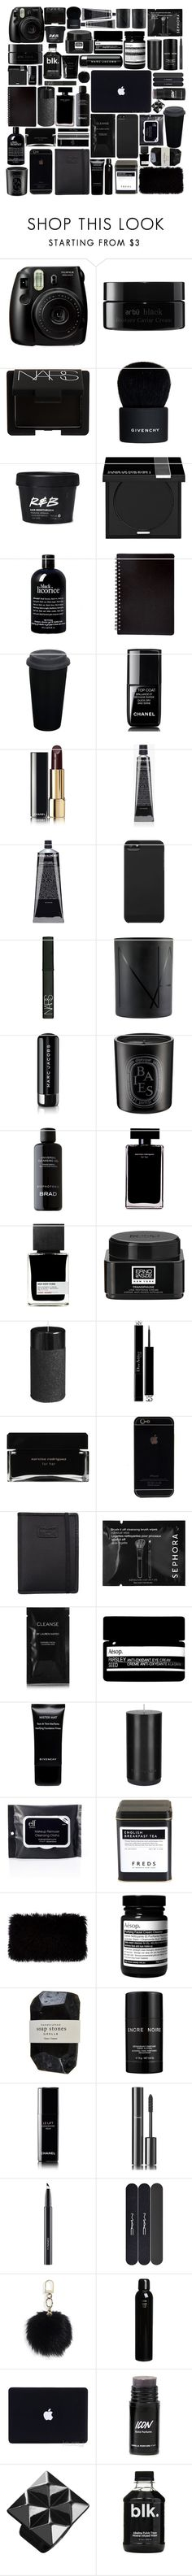 """black fillers"" by katyaluuno ❤ liked on Polyvore featuring beauty, Fujifilm, arbÅ«, NARS Cosmetics, Givenchy, MAKE UP FOR EVER, philosophy, Chanel, Grown Alchemist and Incase"